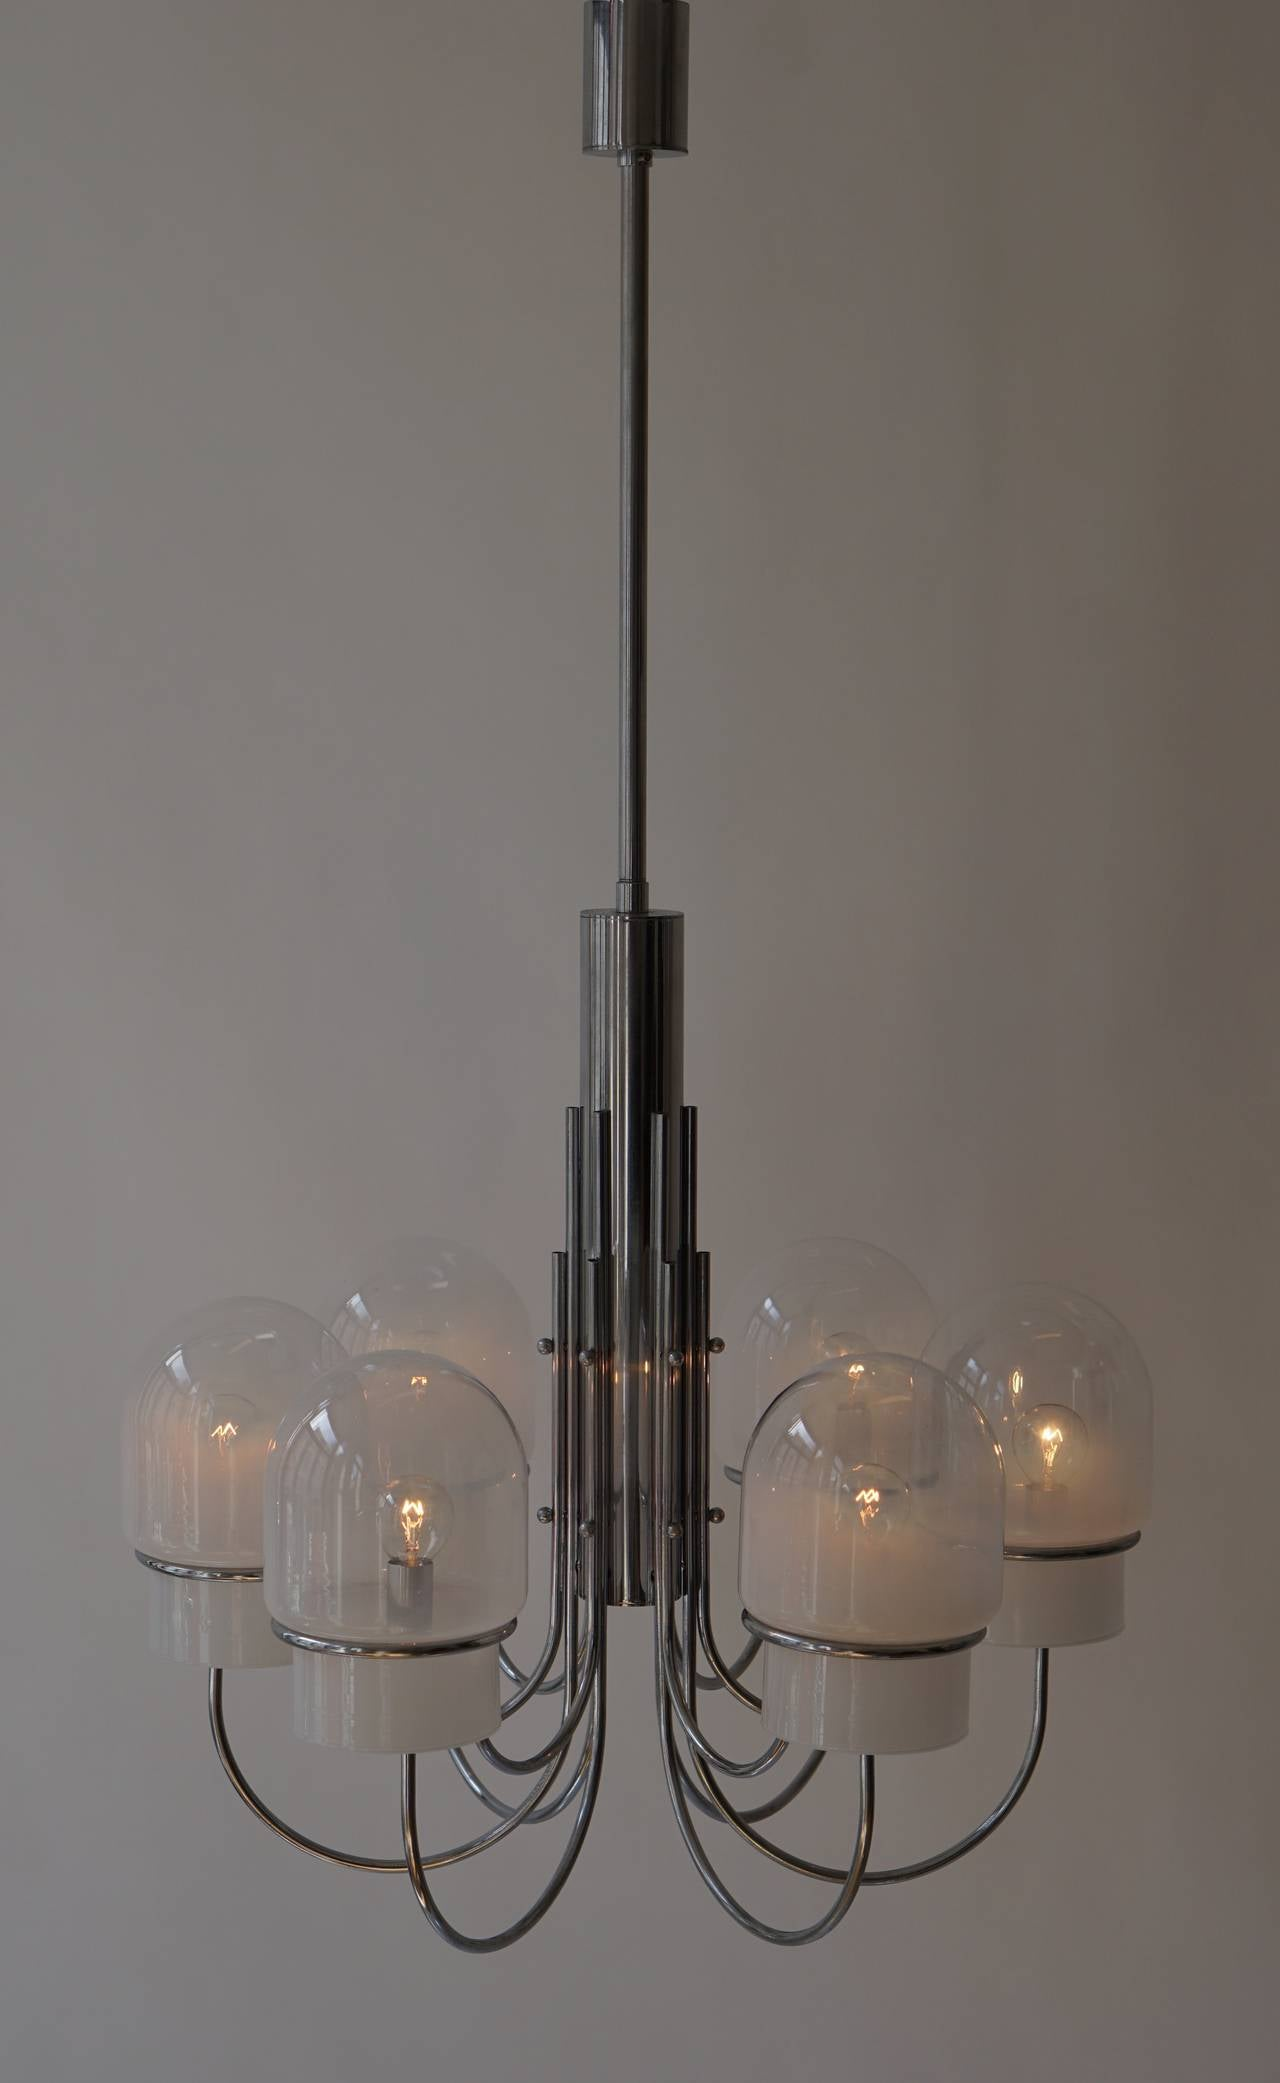 Italian Six Arched Arm Chrome and Milk Glass Chandelier, circa 1960s For Sale 3